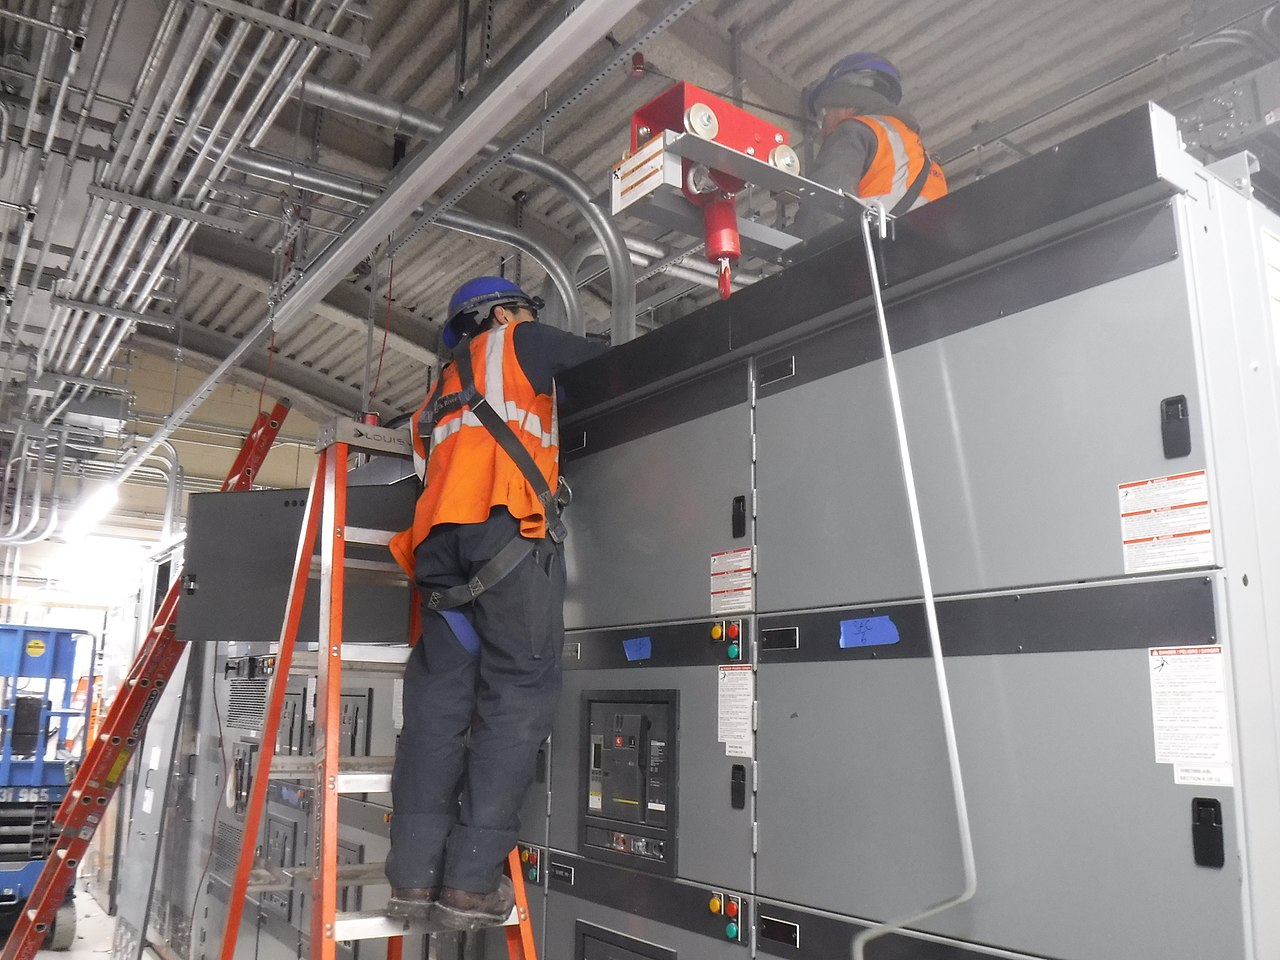 Fileinstallation Of 1 Conduit For The Control Wires Electrical Wiring Switchgear Cabinet Located In B13 Substation Cs179 08 18 24783380897